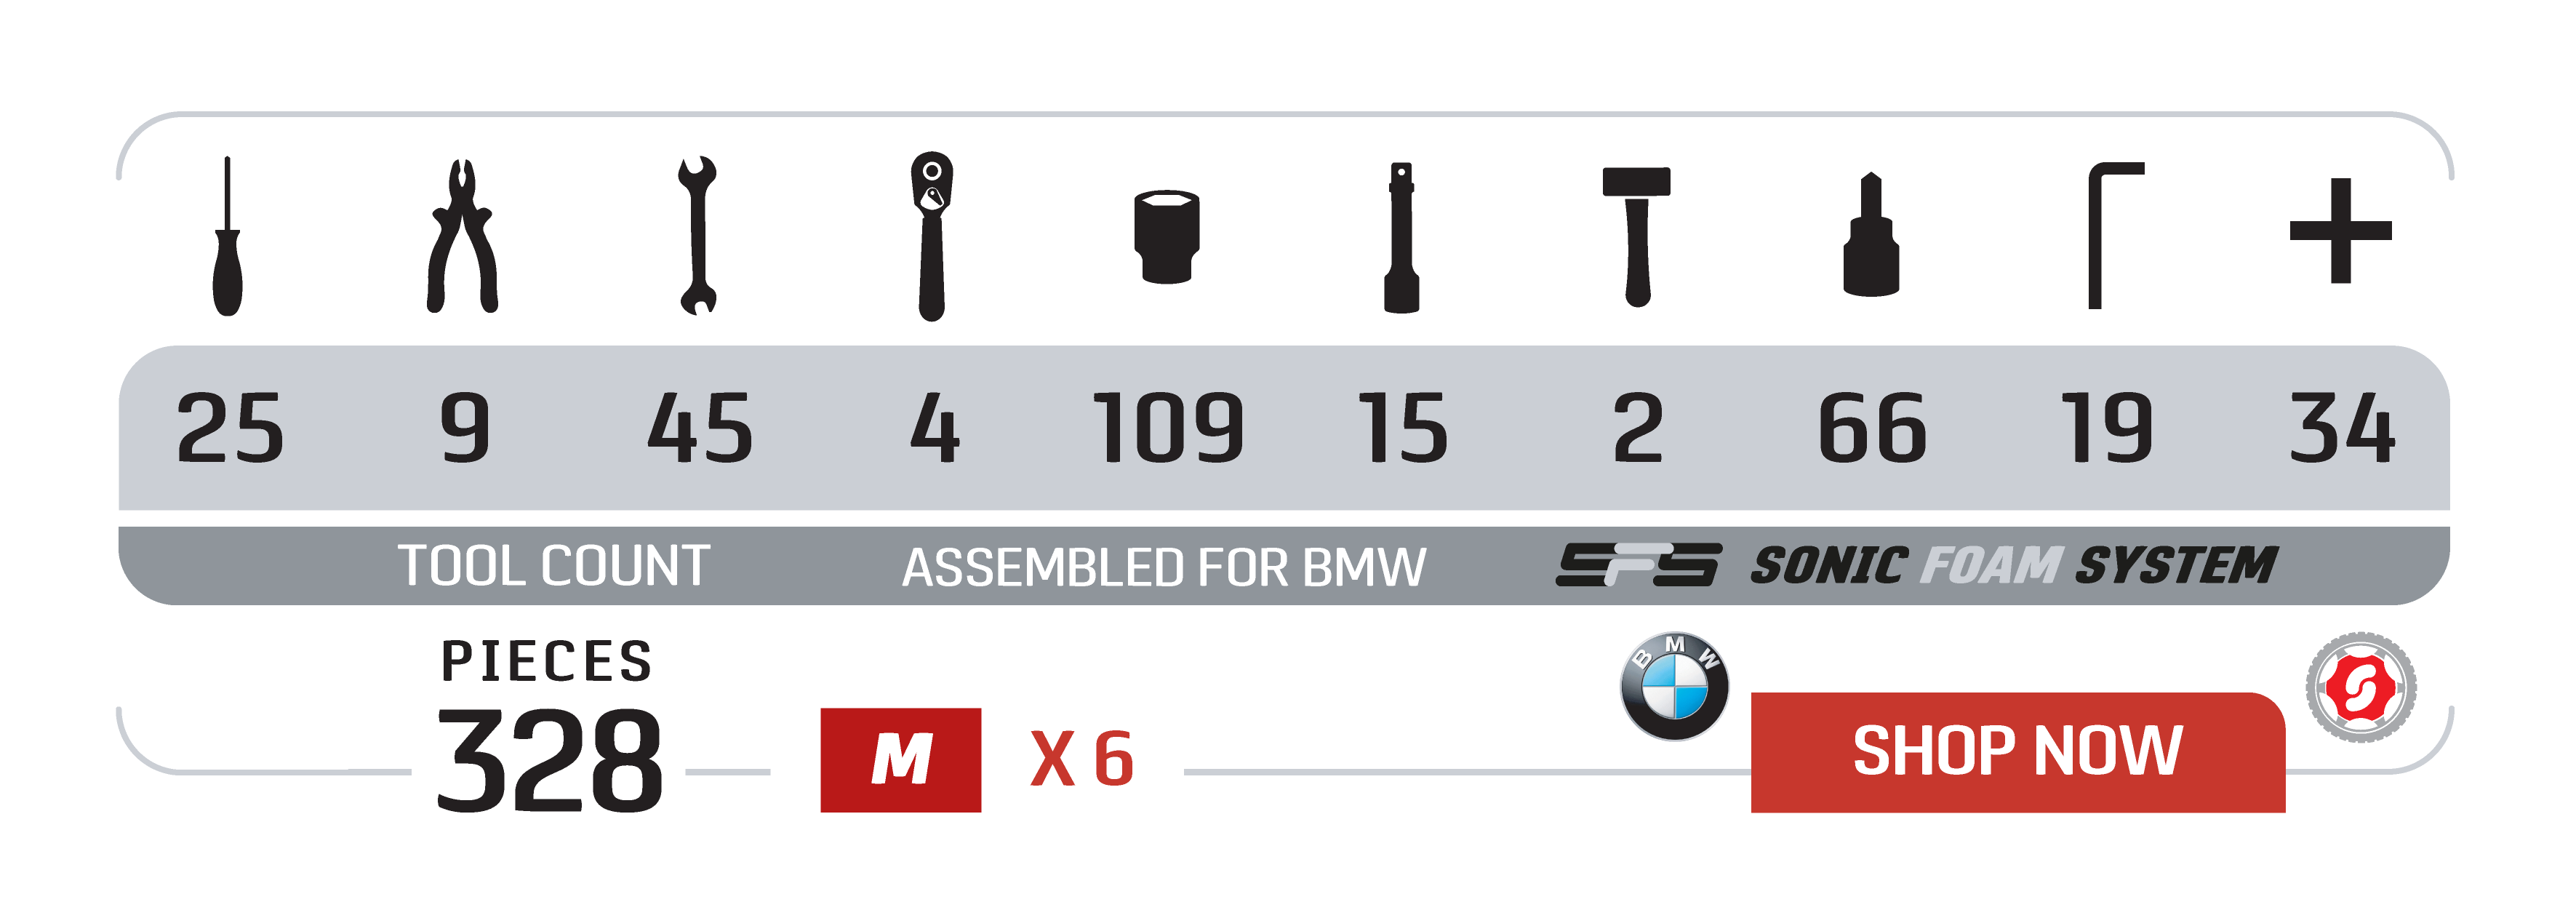 s9-328-int-2-bmw-mx6-42.png